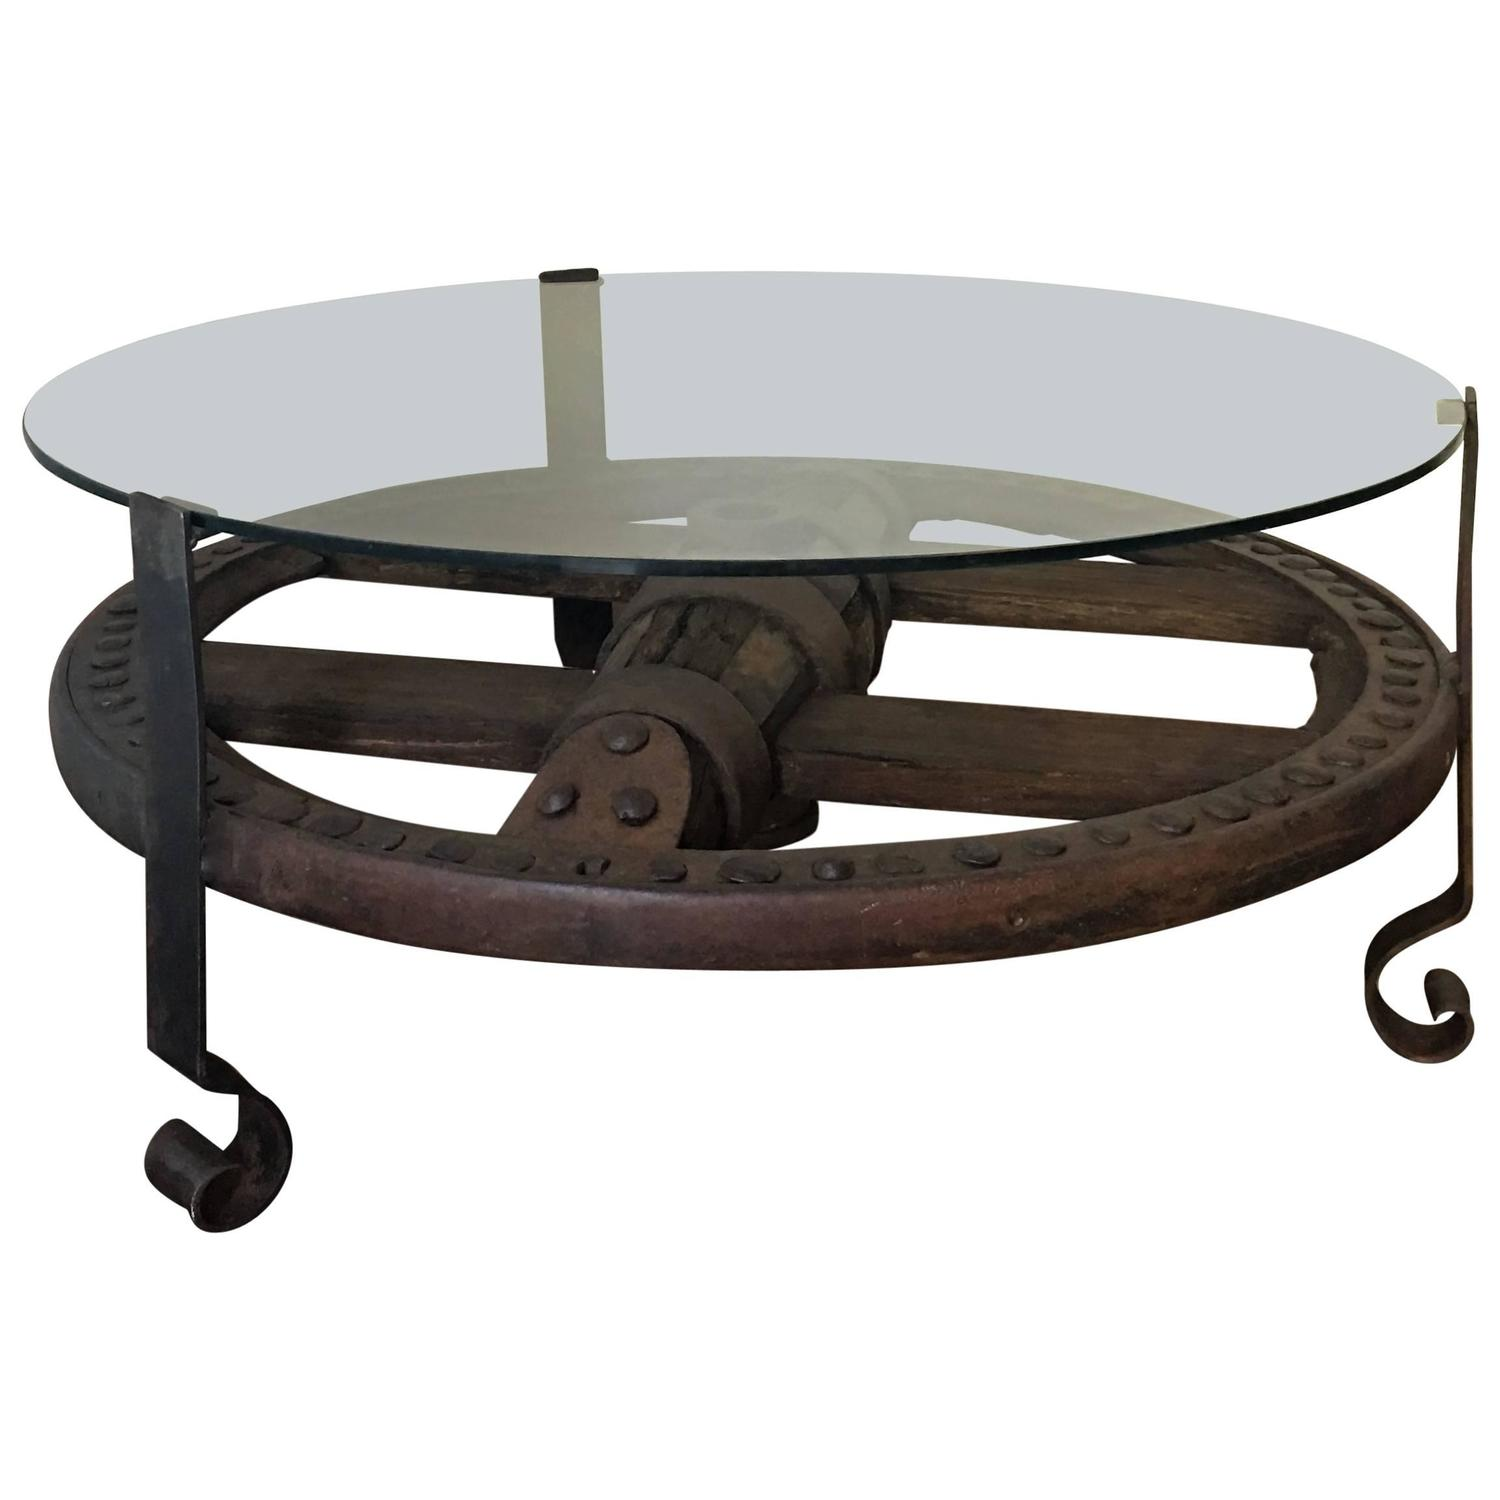 Glass Top Wooden Wagon Wheel Indutrial Accent Table For Sale At 1stdibs